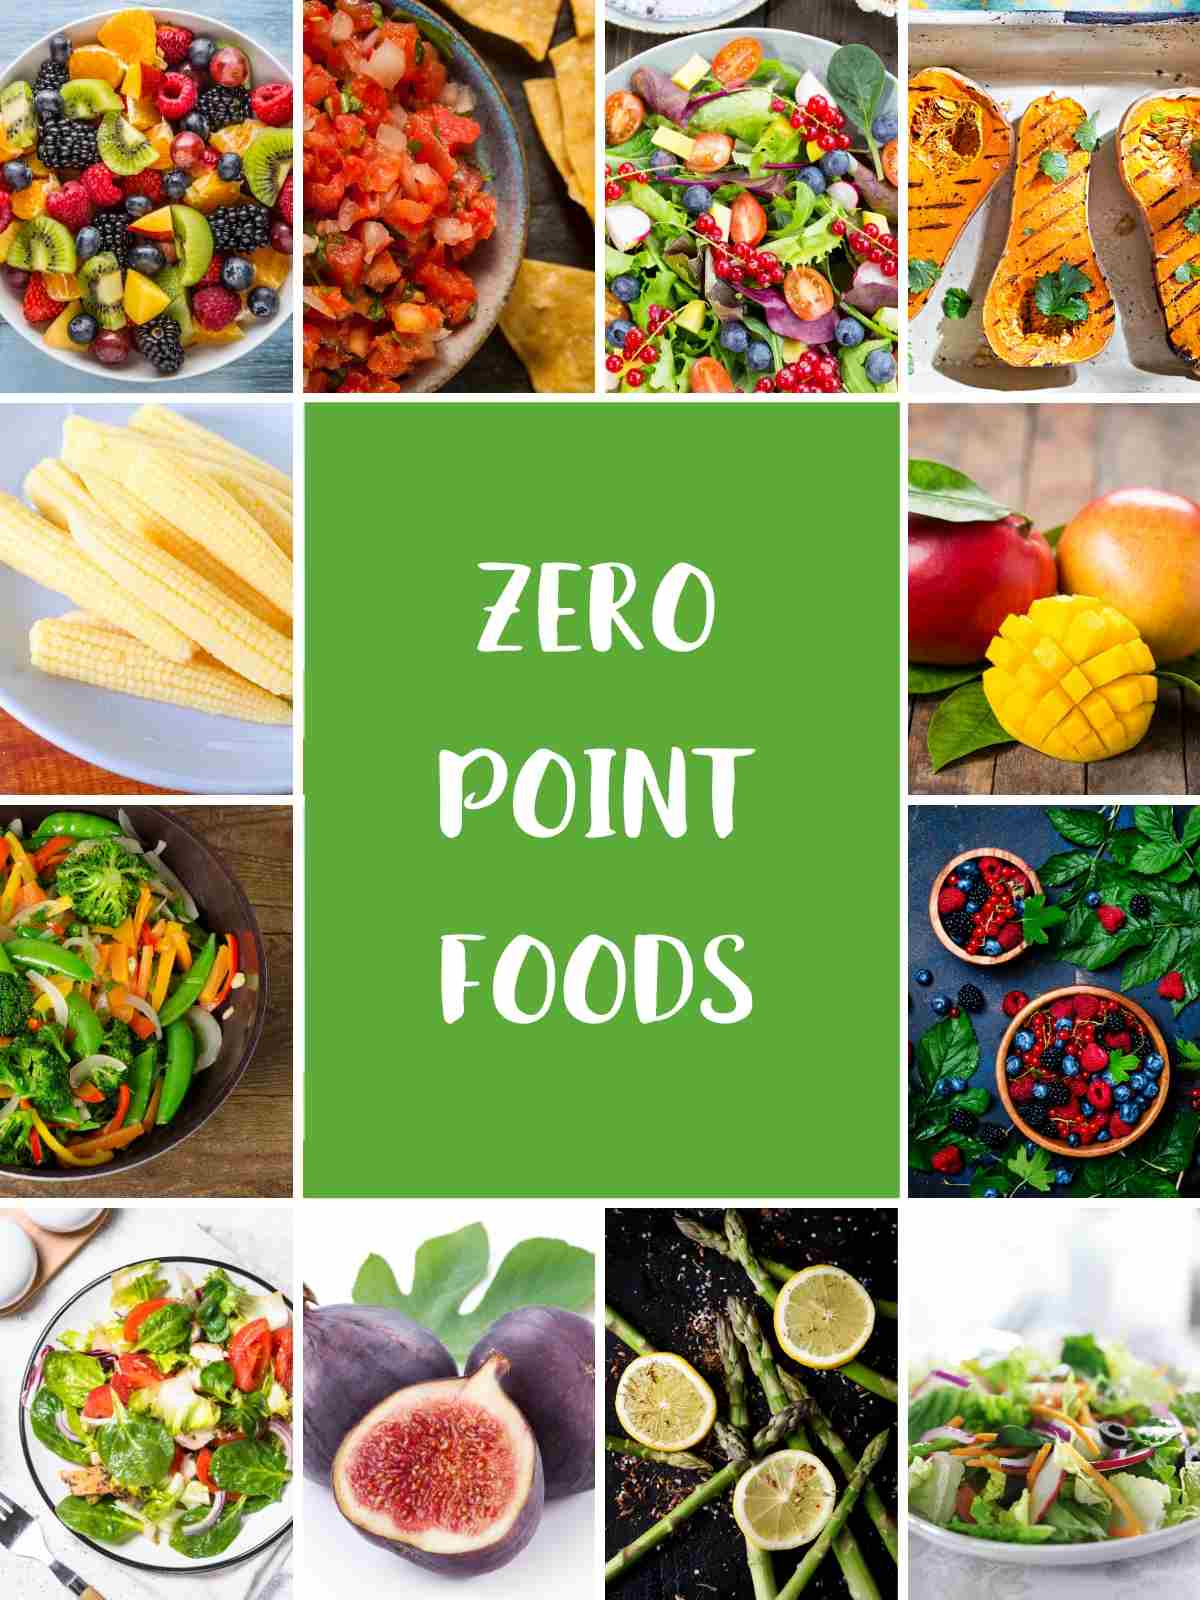 A collage of 12 pictures of foods that are zero points on the WW Green plan including fruits and vegetables.